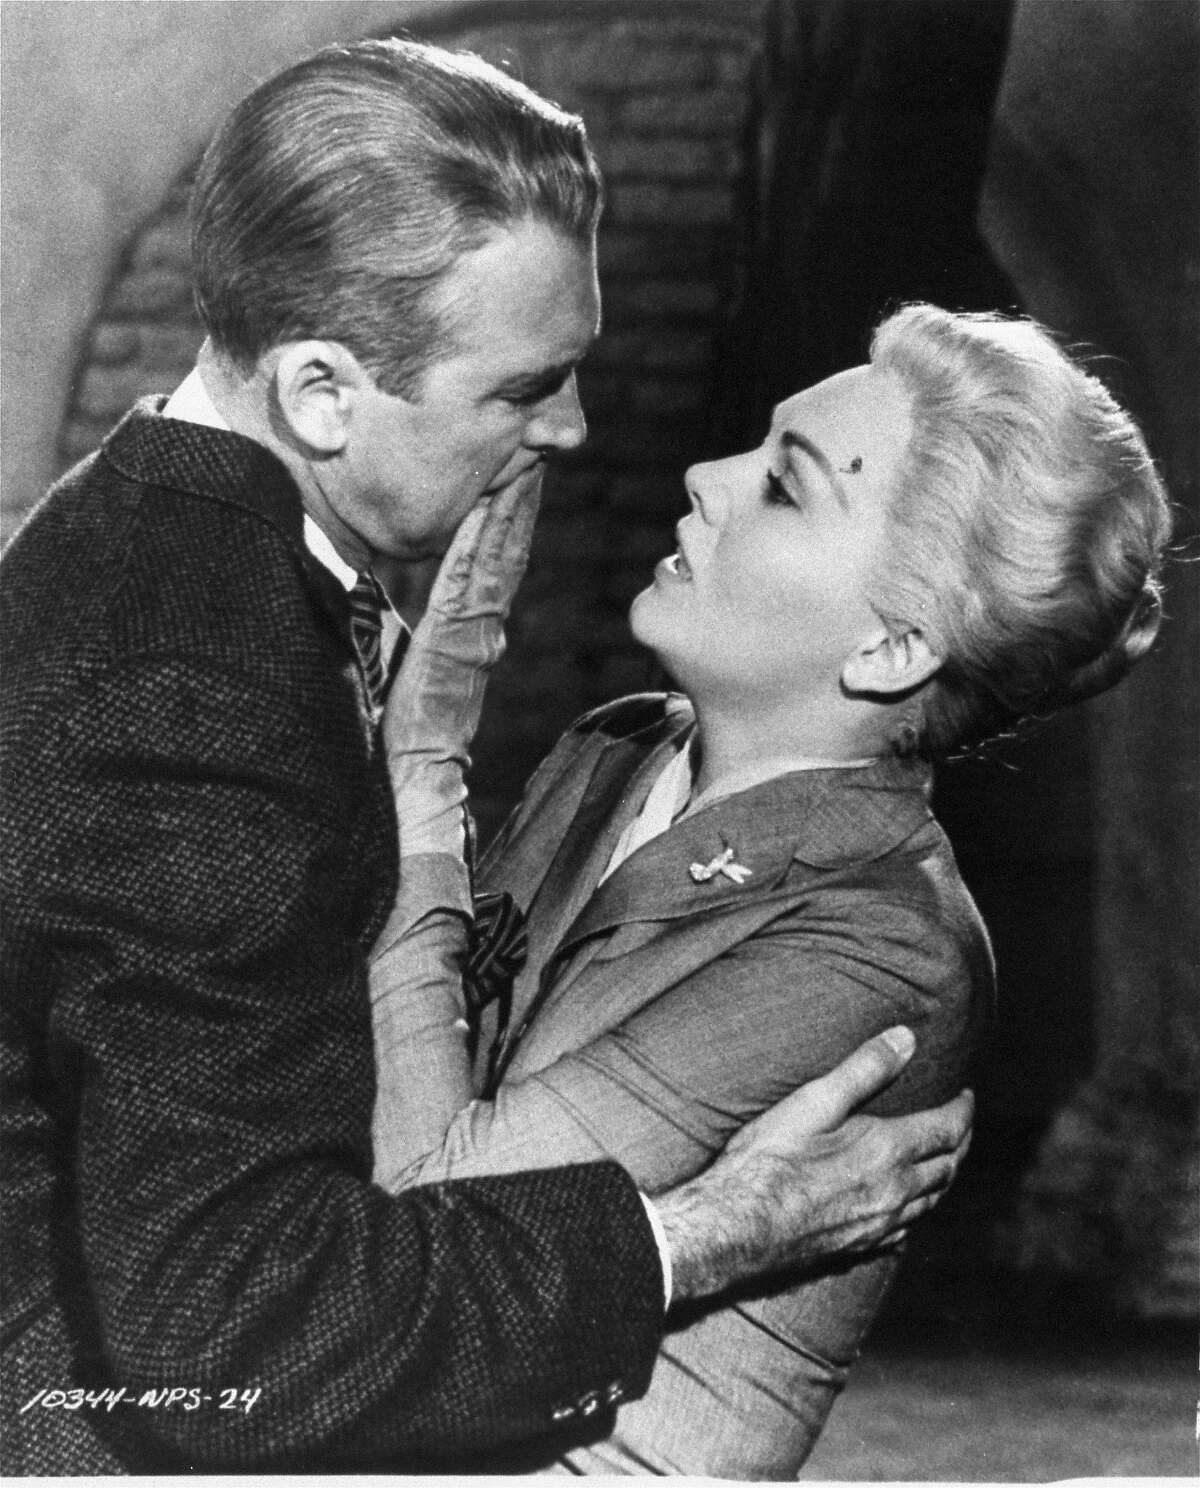 """This undated film image released by Paramount shows Jimmy Stewart, left, and Kim Novak in a scene from Alfred Hitchcock's 1958, """"Vertigo."""" Hitchcock's """"Vertigo"""" took the top spot in the top 10 greatest movies ever list conducted by Sight & Sound, ending the 50-year-long run for Welles' """"Citizen Kane."""" The magazine, published by the British Film Institute, surveys international film critics every decade. (AP Photo/Paramount Pictures, file)"""